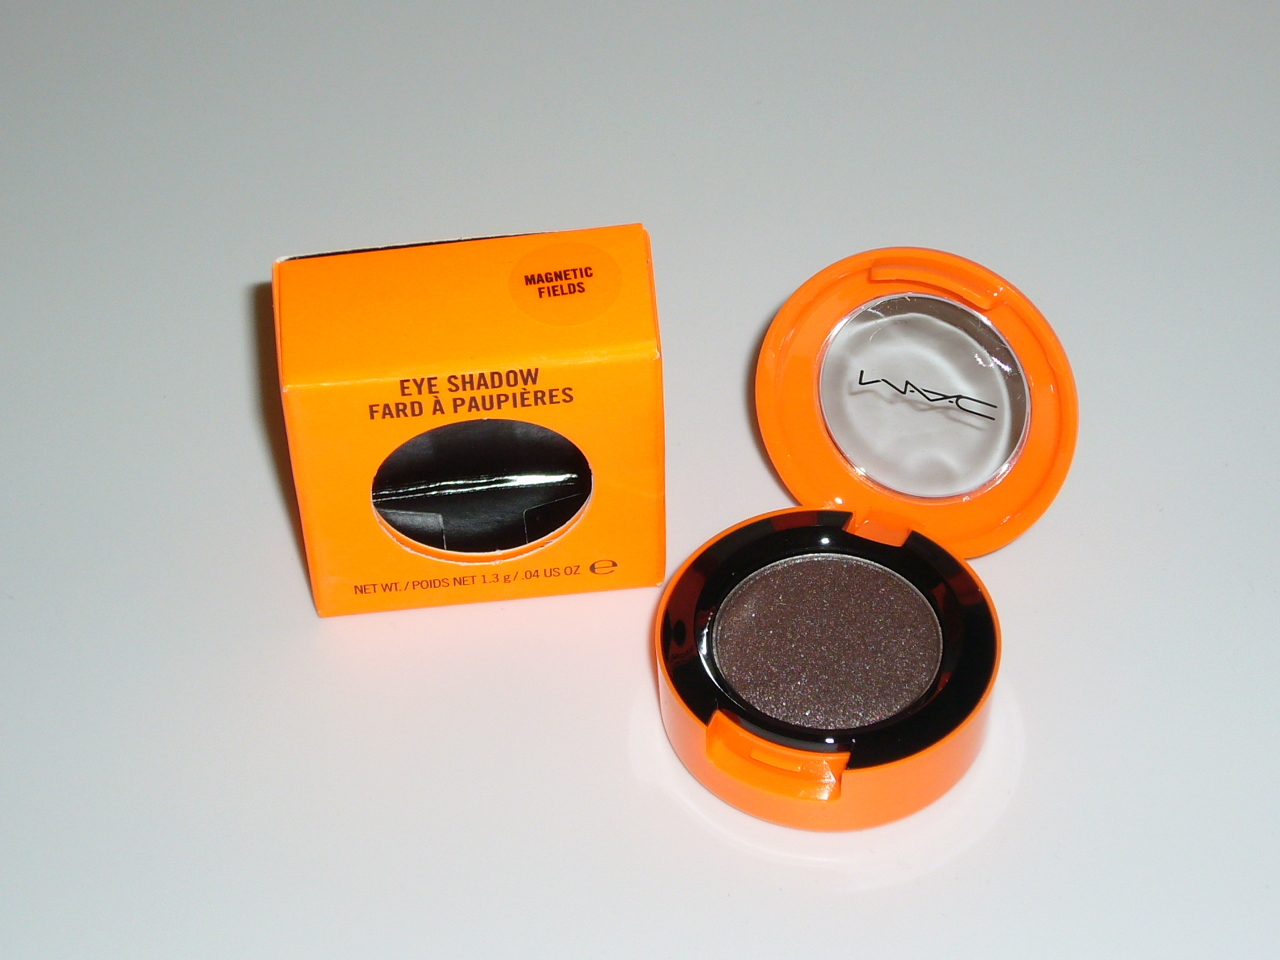 MAC Cosmetics Eye Shadow - Magnetic Fields MAC